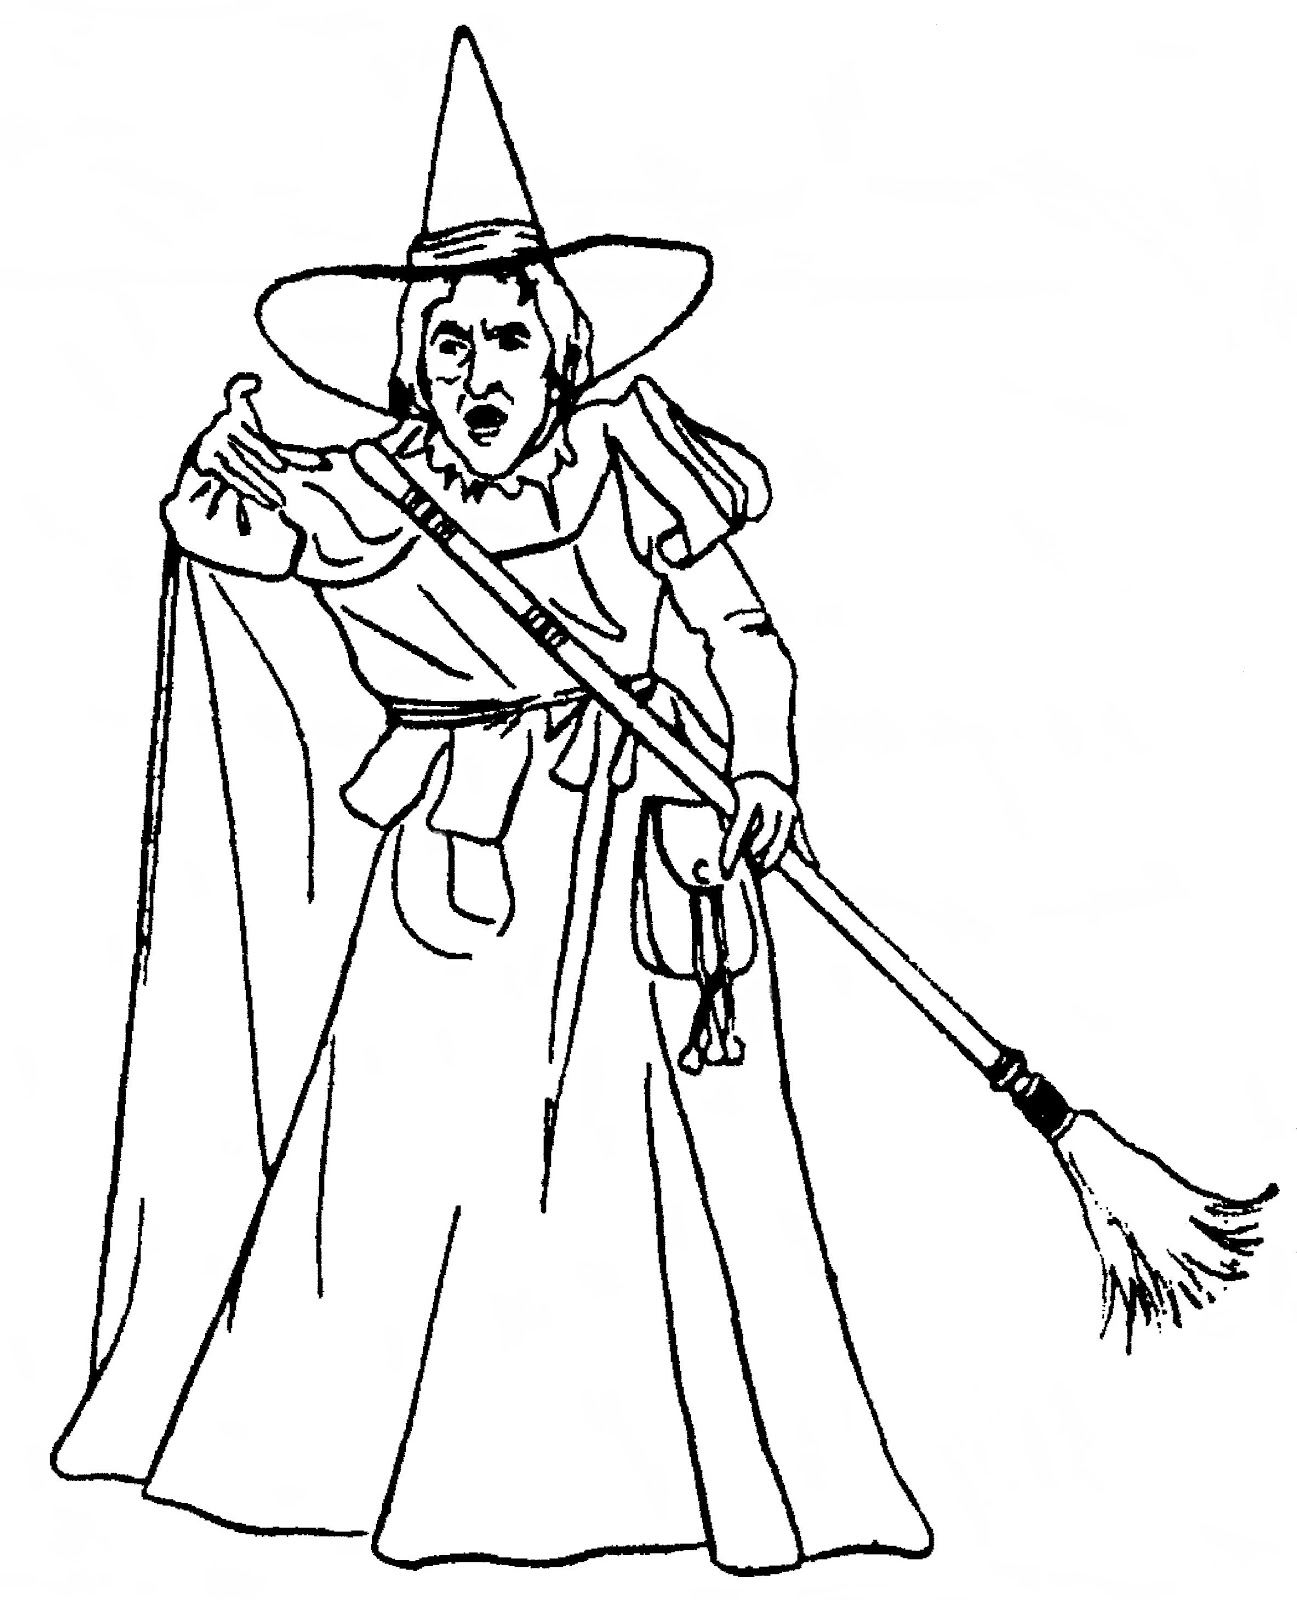 Witches Shoes Coloring Pages